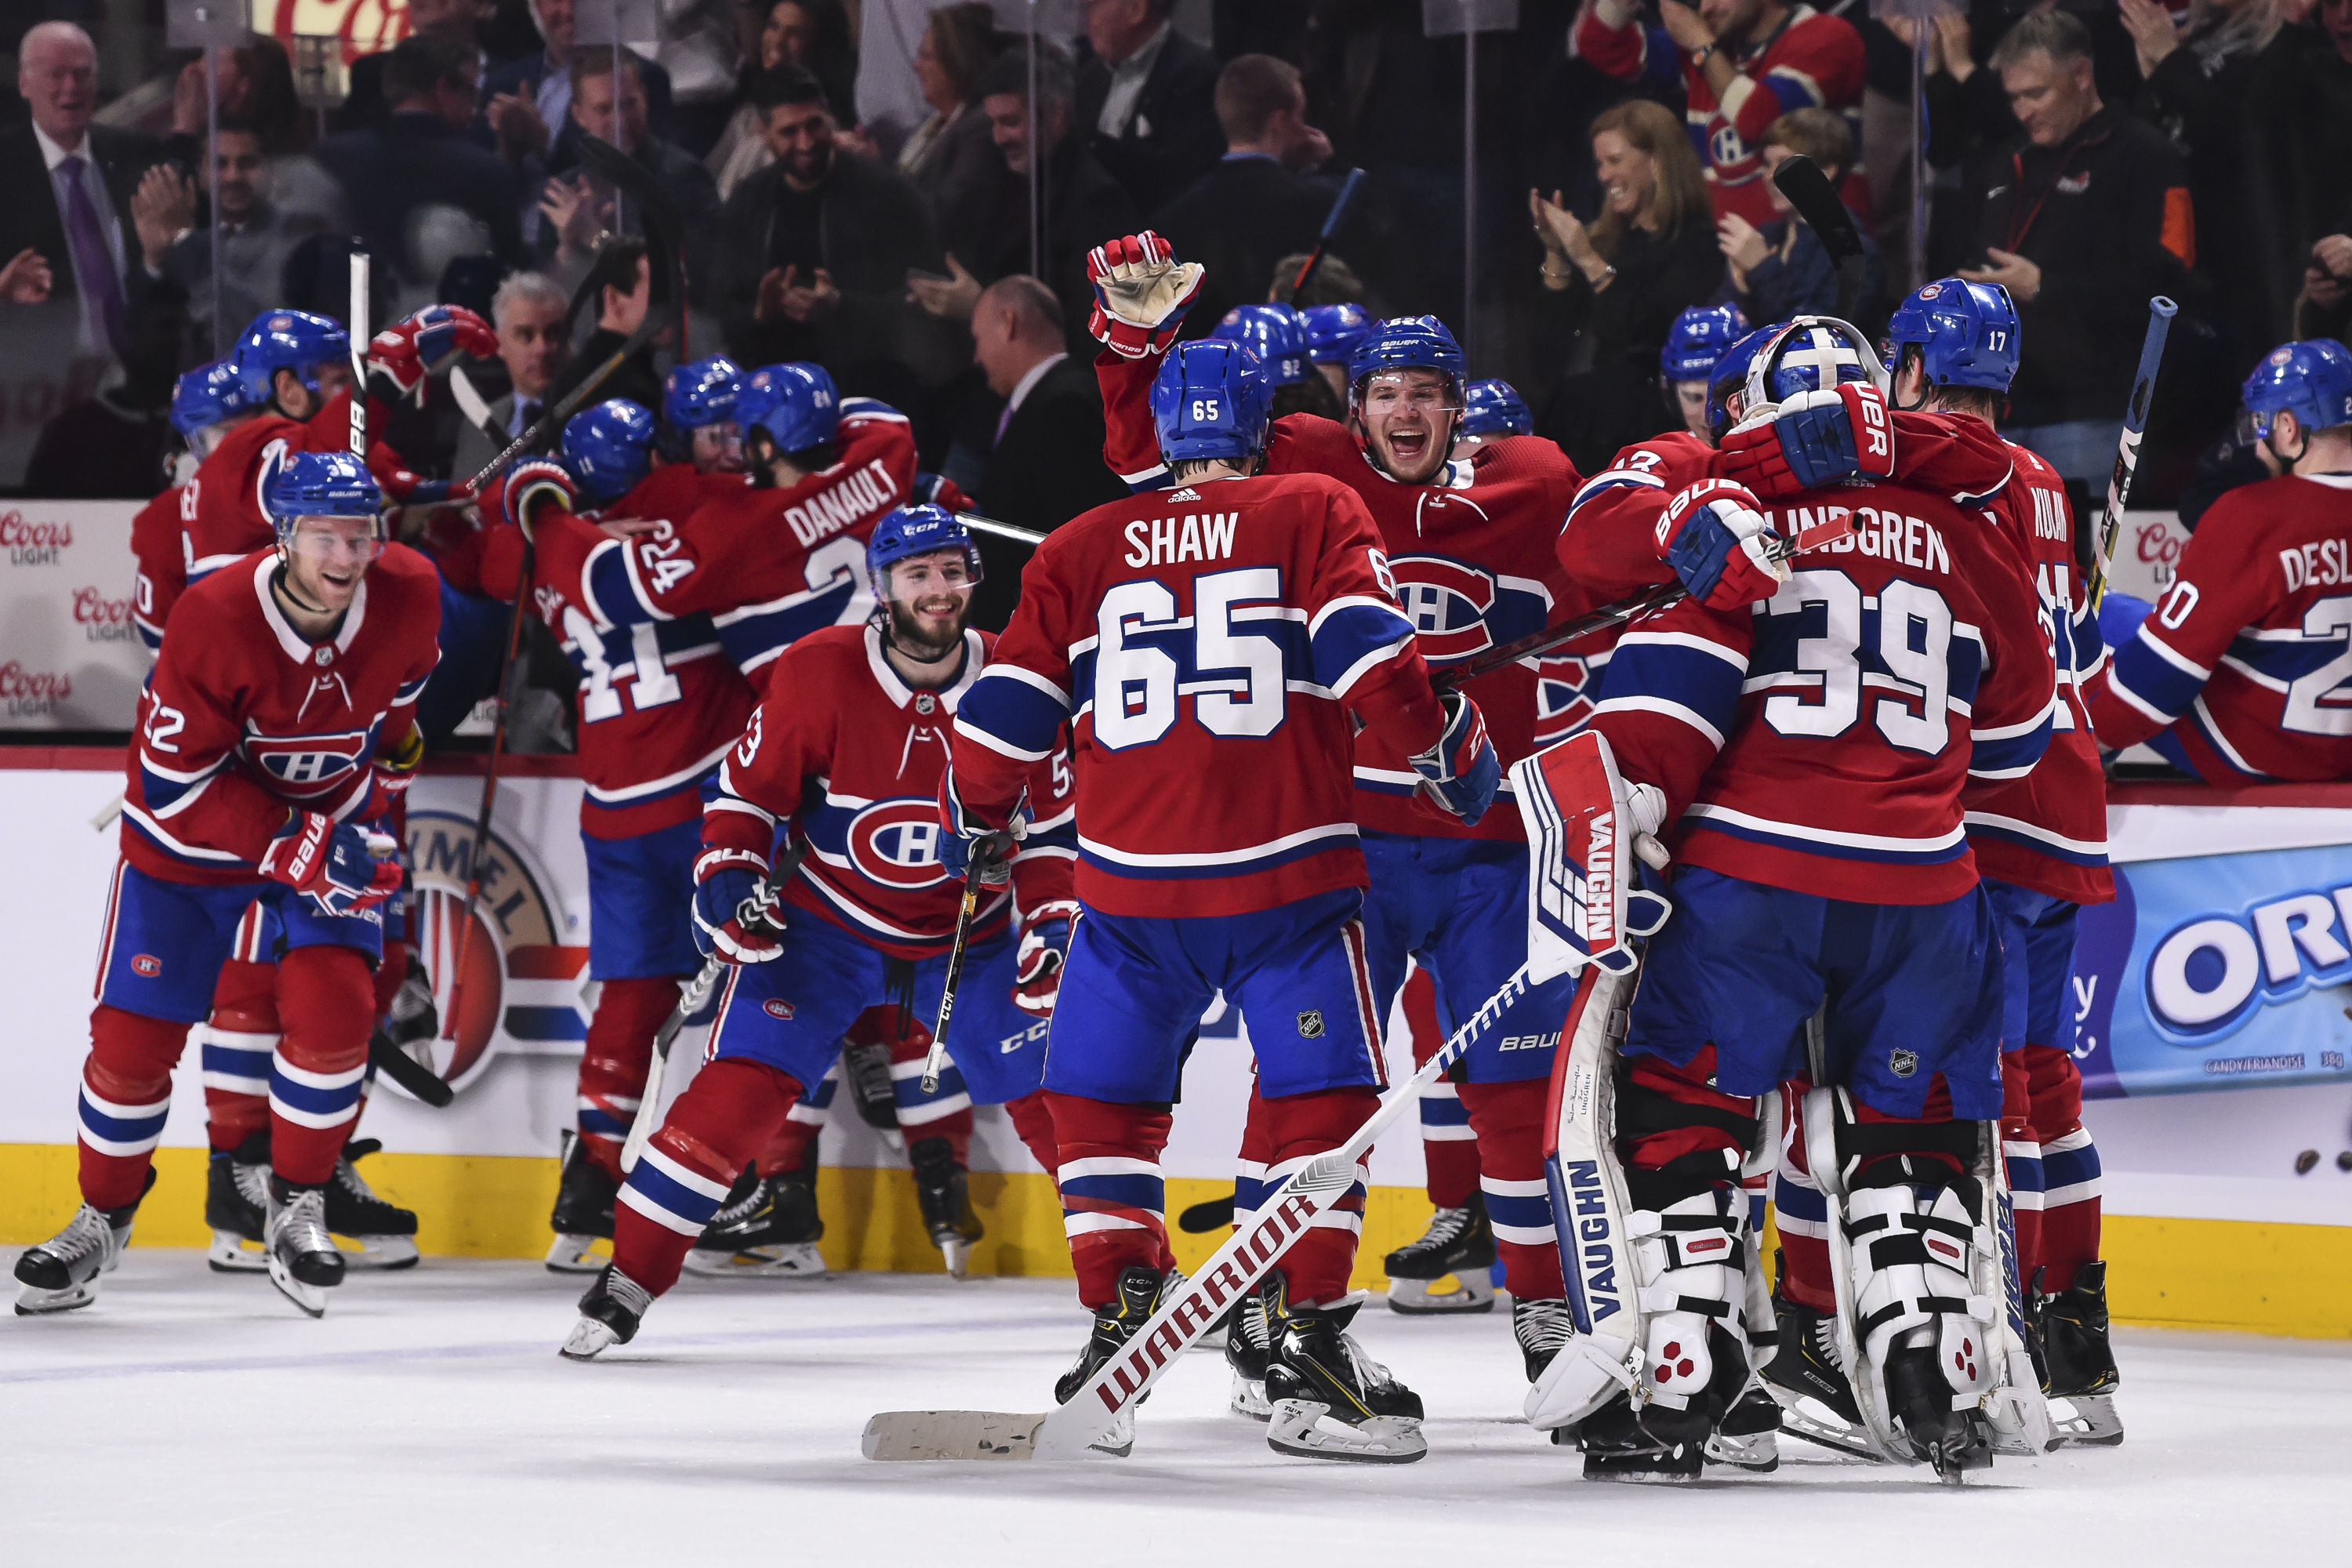 Habs Headlines: Is a wind of change blowing through the